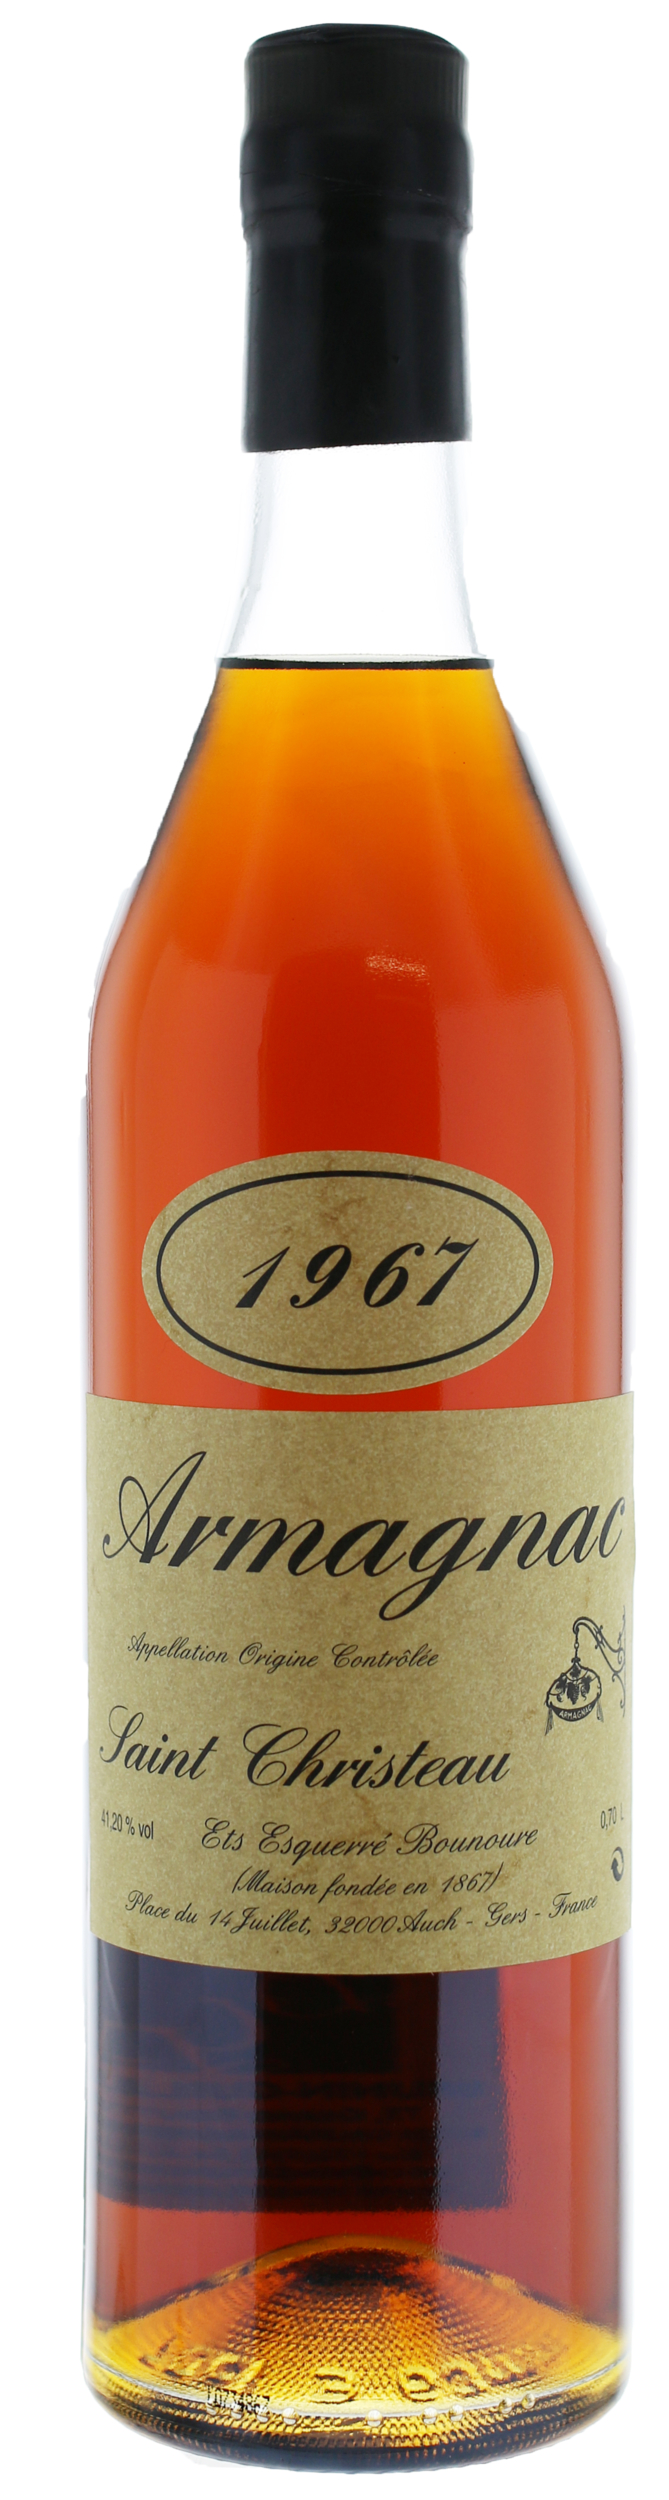 ARMAGNAC 1967 Saint-Christeau - 41° - G. Miclo